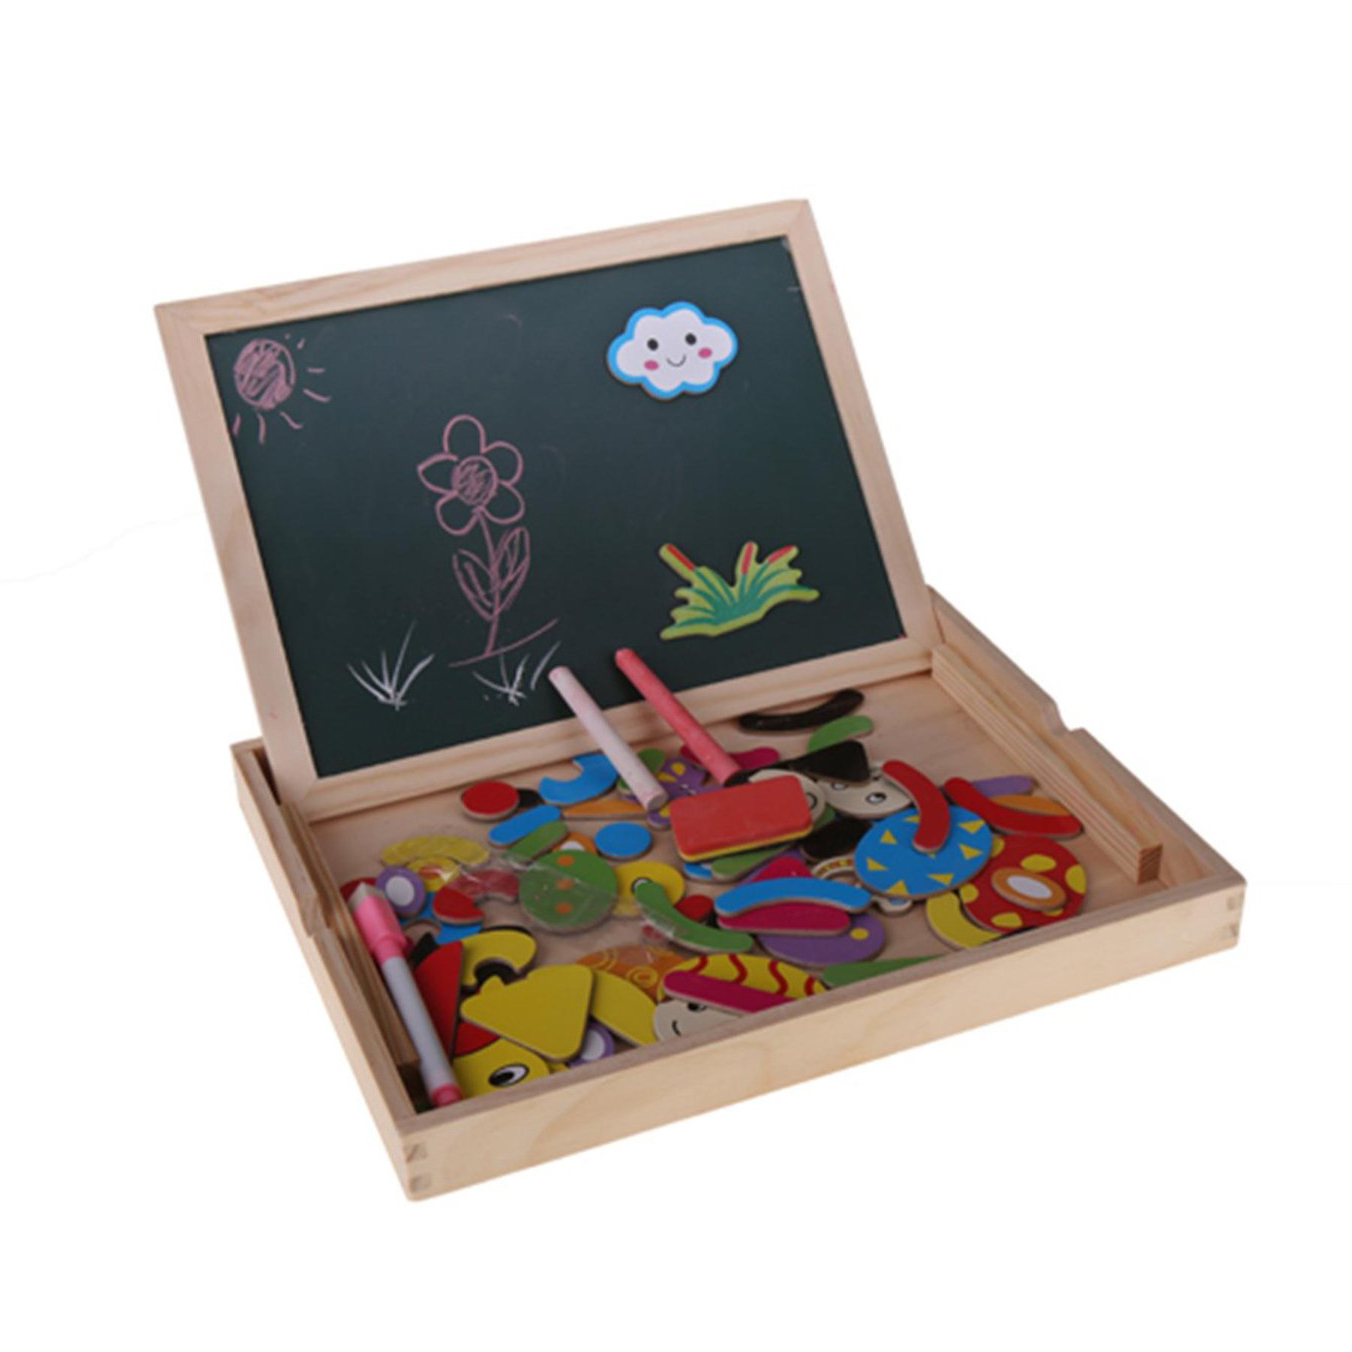 Baby Kids Painting Learning Toy Fantastic Wooden Easel Magnetic Doodle Drawing Board Drawing Blackboard Toy For Children Gift xideyi 24x35 inchs soft magnetic blackboard magnetic board magnetic refrigerator blackboard for multiple planning